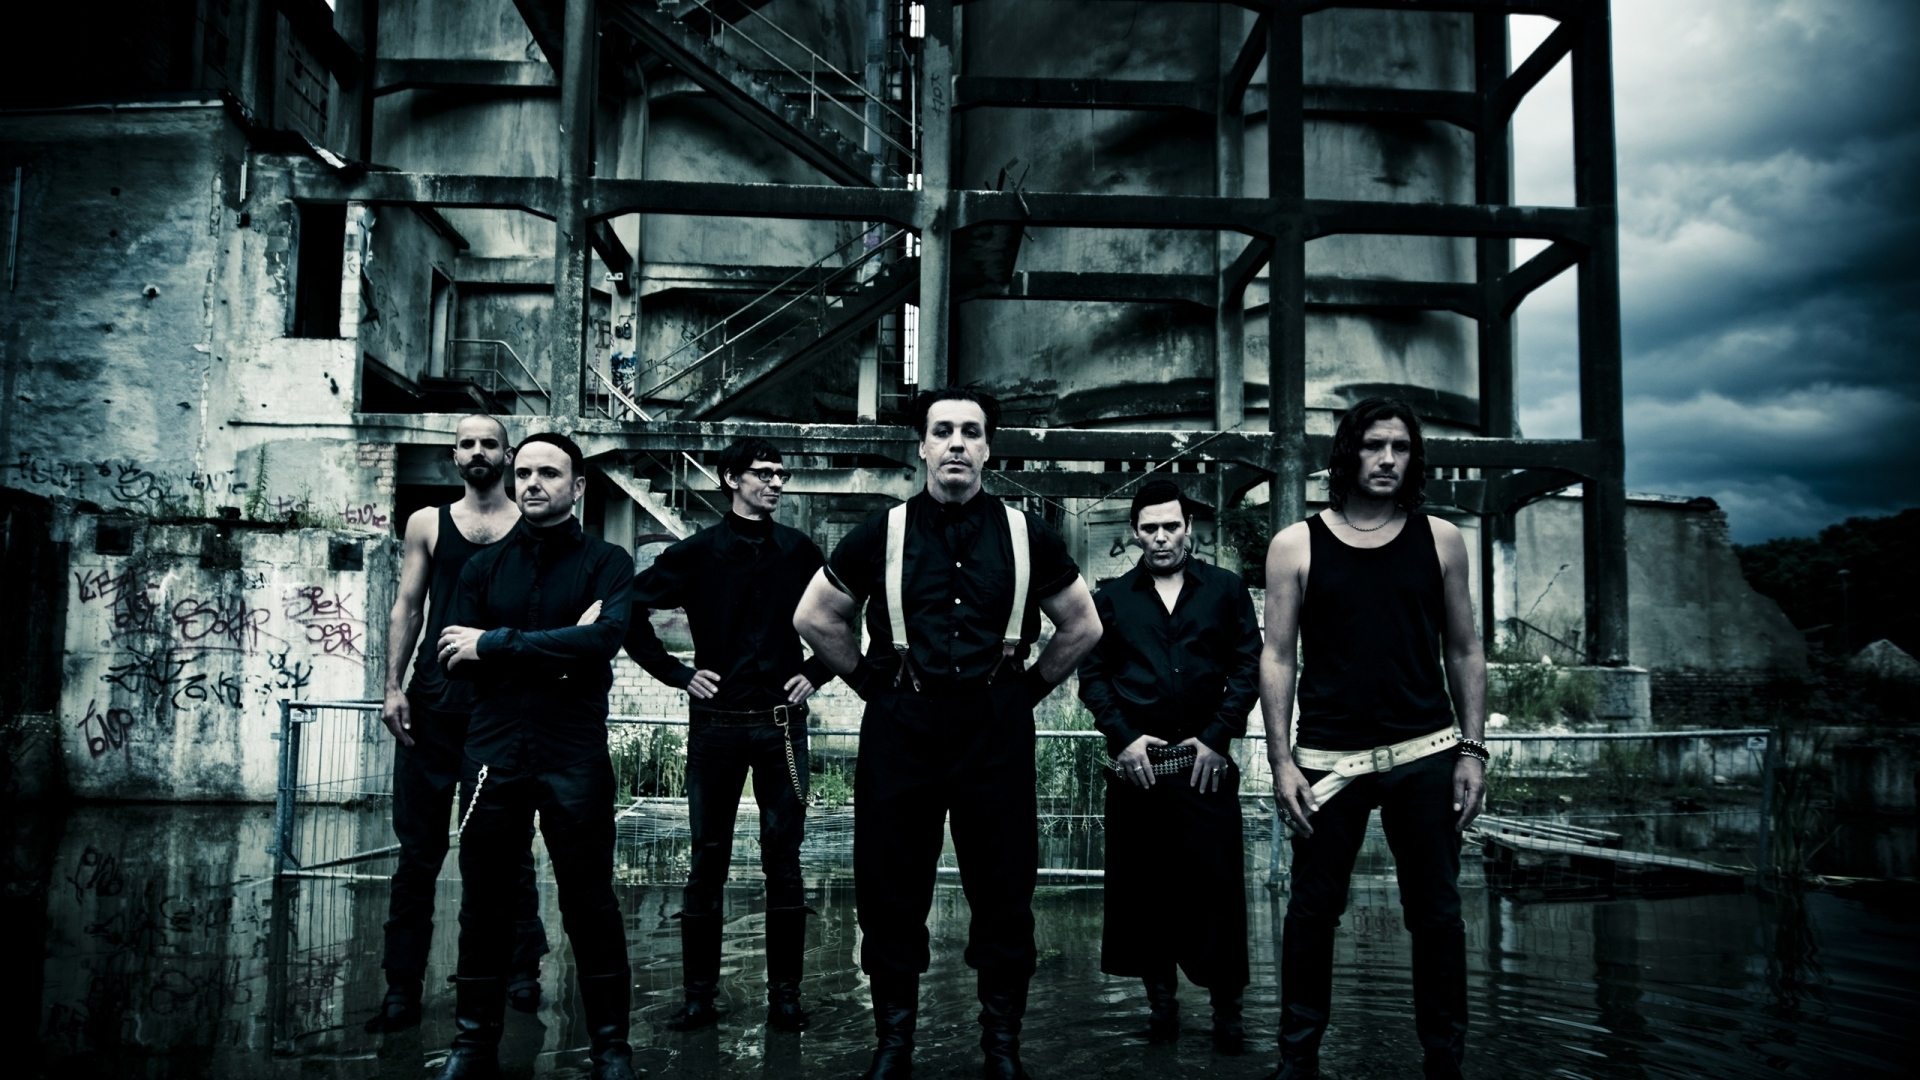 rammstein band members gloom outdoors 2460 1920x1080